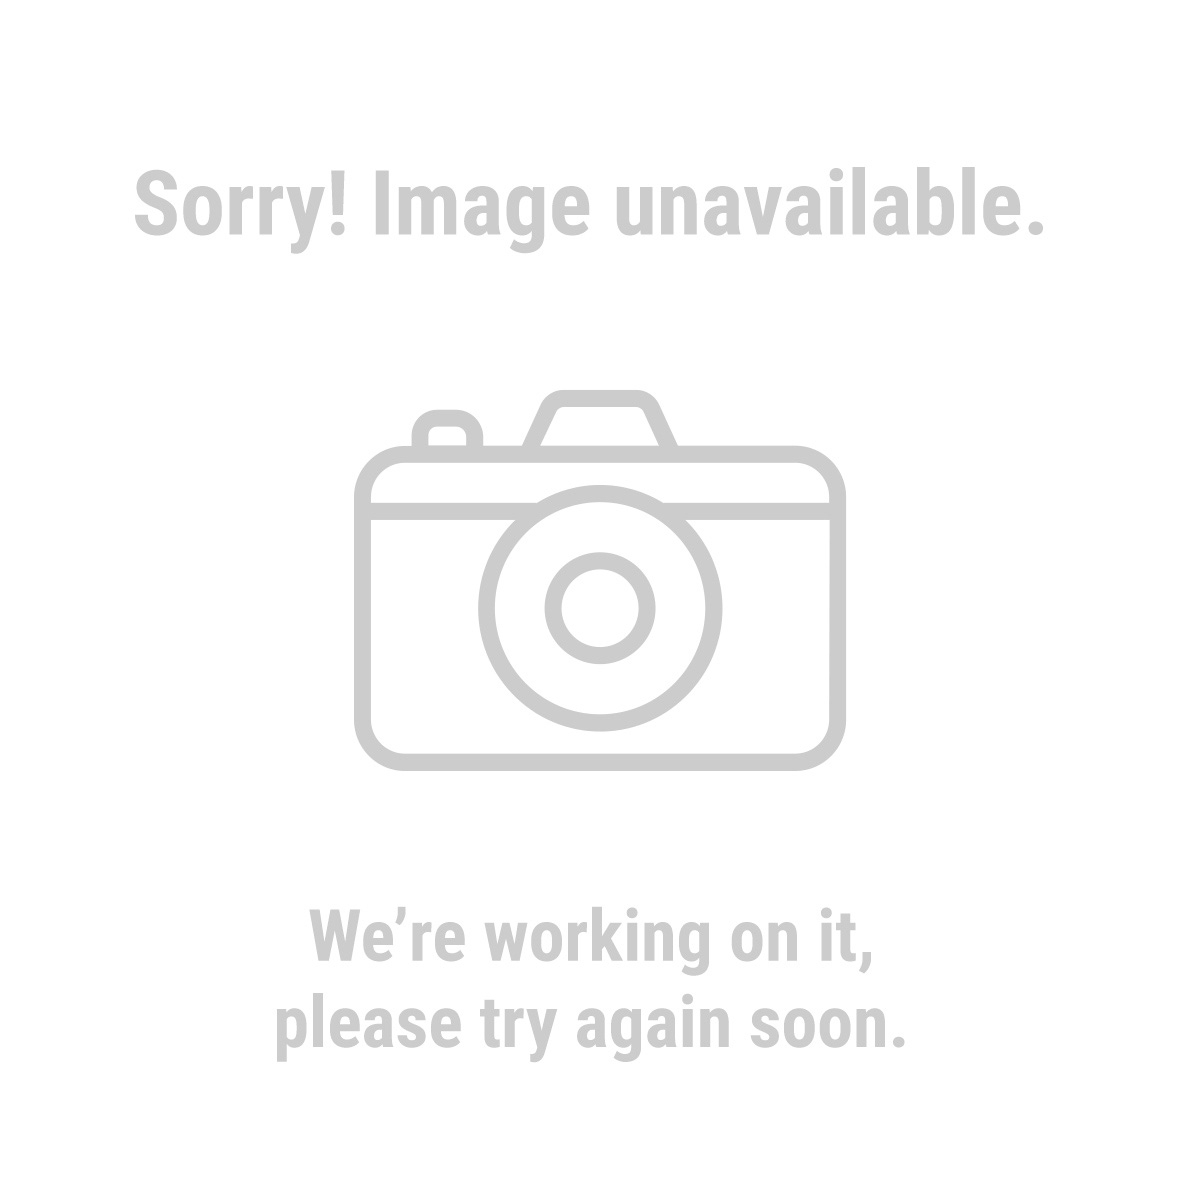 30 Ton Log Splitter with 9 HP Engine